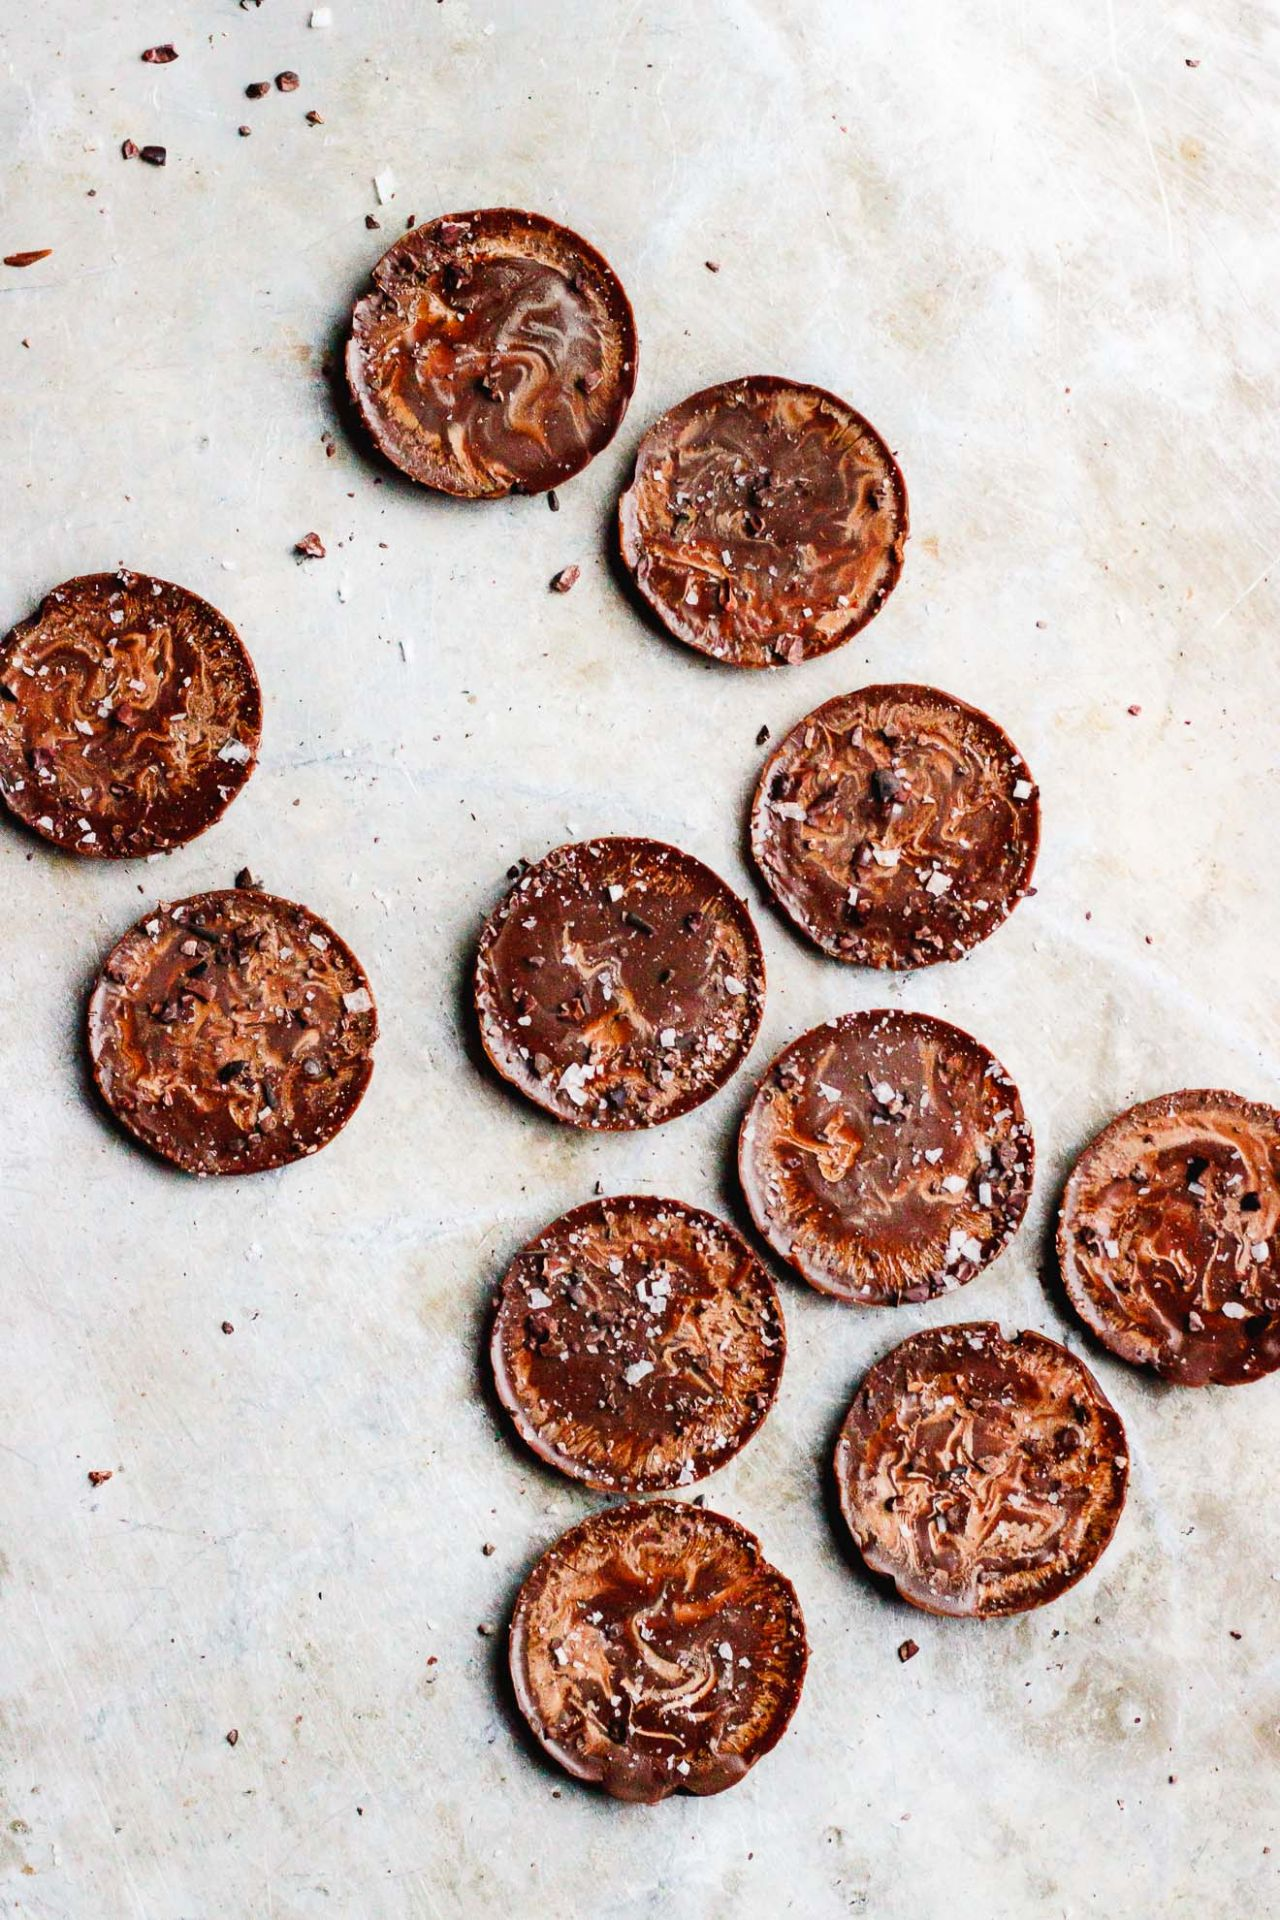 Coconut Oil Fat Bombs with Cacao Nibs + Flake Salt - Recipes Chocolate Nibs